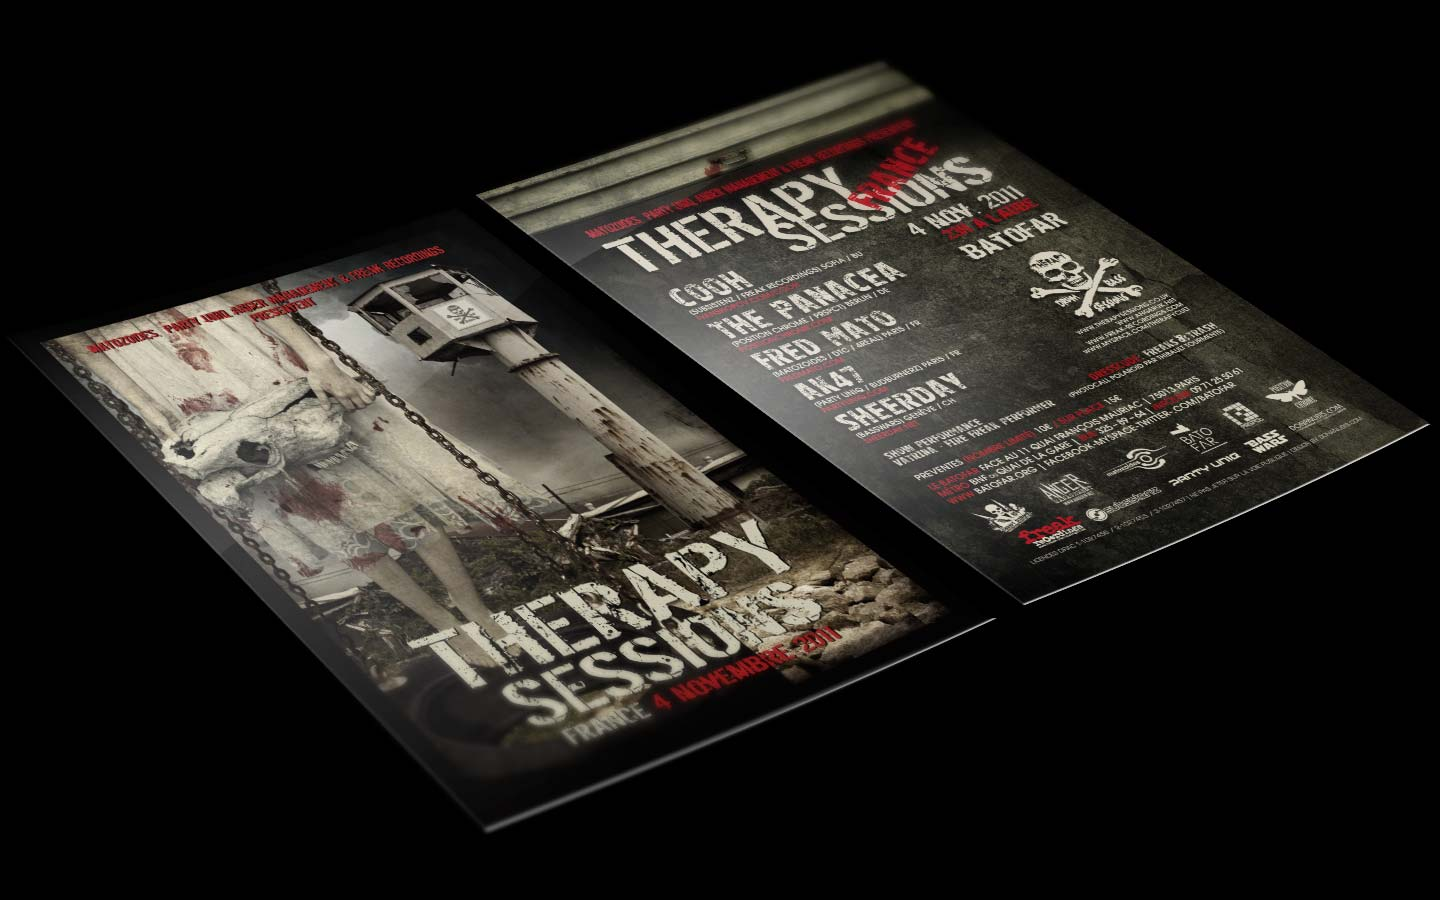 Therapy Sessions - France - Laurent Lemoigne - Donanubis - Don Anubis - Digital Art - Graphic Design - Flyer - Matozoides - Party Uniq - Anger Management - Freak Recordings - Batofar - Paris - Art - Music - Electronic - Party - Event - Flyer - Poster - Industrial - Dark - Skull - Consanguinity - Wrong Turn - Chainsaw Massacre - Freak - Family - Skin - Flesh - Psychatric - Psychotic - Canibal - Alternative - Underground - Geneva - Switzerland - Drum and Bass - d'n'b - Hard Drum - Hardcore - Crossbreed - Cooh / Subsistenz / Freak Recordings - The Panacea / Position Chrome / Prspct - Fred Mato / Matozoides / dtc / 4real - Ak47 / PArty Uniq / Budburnerz - Sheerday / Basswars - Metal - Hard - Rock - Death - Band - Illustration